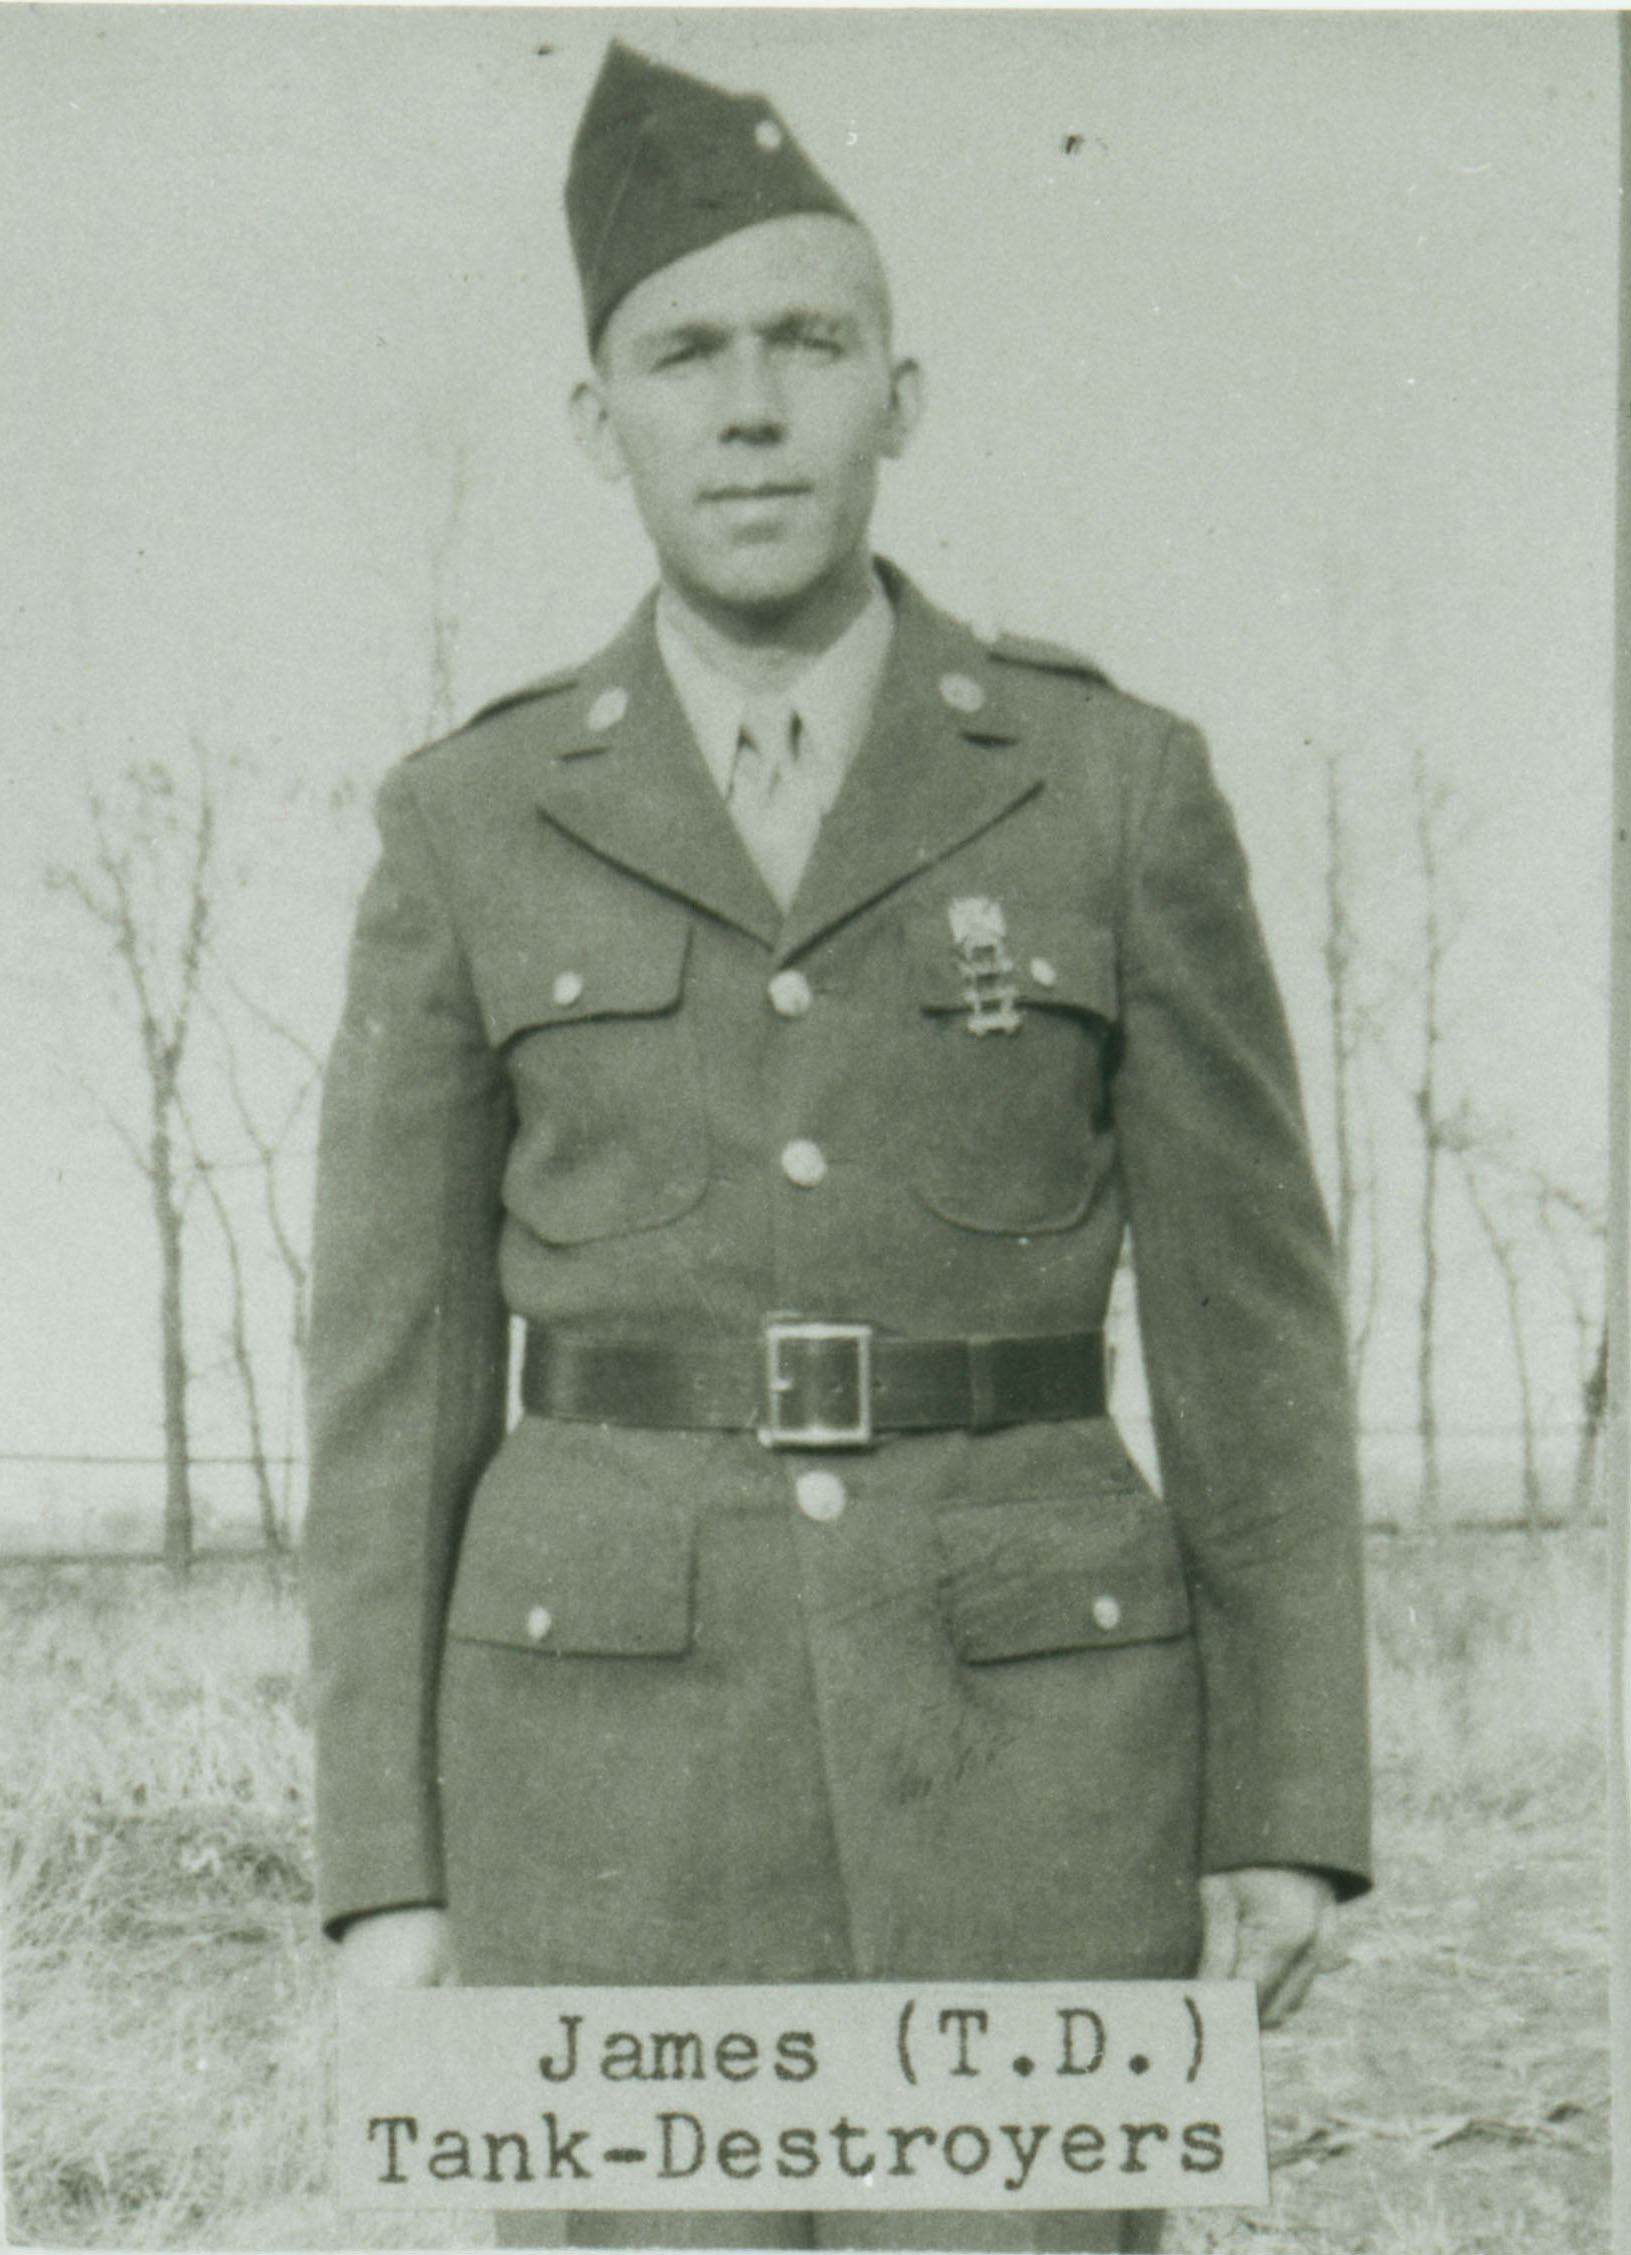 """James Radlein and five of his brothers served during World War II in various branches of the military. James is featured in the History Center exhibit.         Normal   0           false   false   false     EN-US   X-NONE   X-NONE                                                                                                                                                                                                                                                                                                                                                                           /* Style Definitions */  table.MsoNormalTable {mso-style-name:""""Table Normal""""; mso-tstyle-rowband-size:0; mso-tstyle-colband-size:0; mso-style-noshow:yes; mso-style-priority:99; mso-style-parent:""""""""; mso-padding-alt:0in 5.4pt 0in 5.4pt; mso-para-margin-top:0in; mso-para-margin-right:0in; mso-para-margin-bottom:10.0pt; mso-para-margin-left:0in; line-height:115%; mso-pagination:widow-orphan; font-size:11.0pt; font-family:""""Calibri"""",""""sans-serif""""; mso-ascii-font-family:Calibri; mso-ascii-theme-font:minor-latin; mso-hansi-font-family:Calibri; mso-hansi-theme-font:minor-latin;}"""